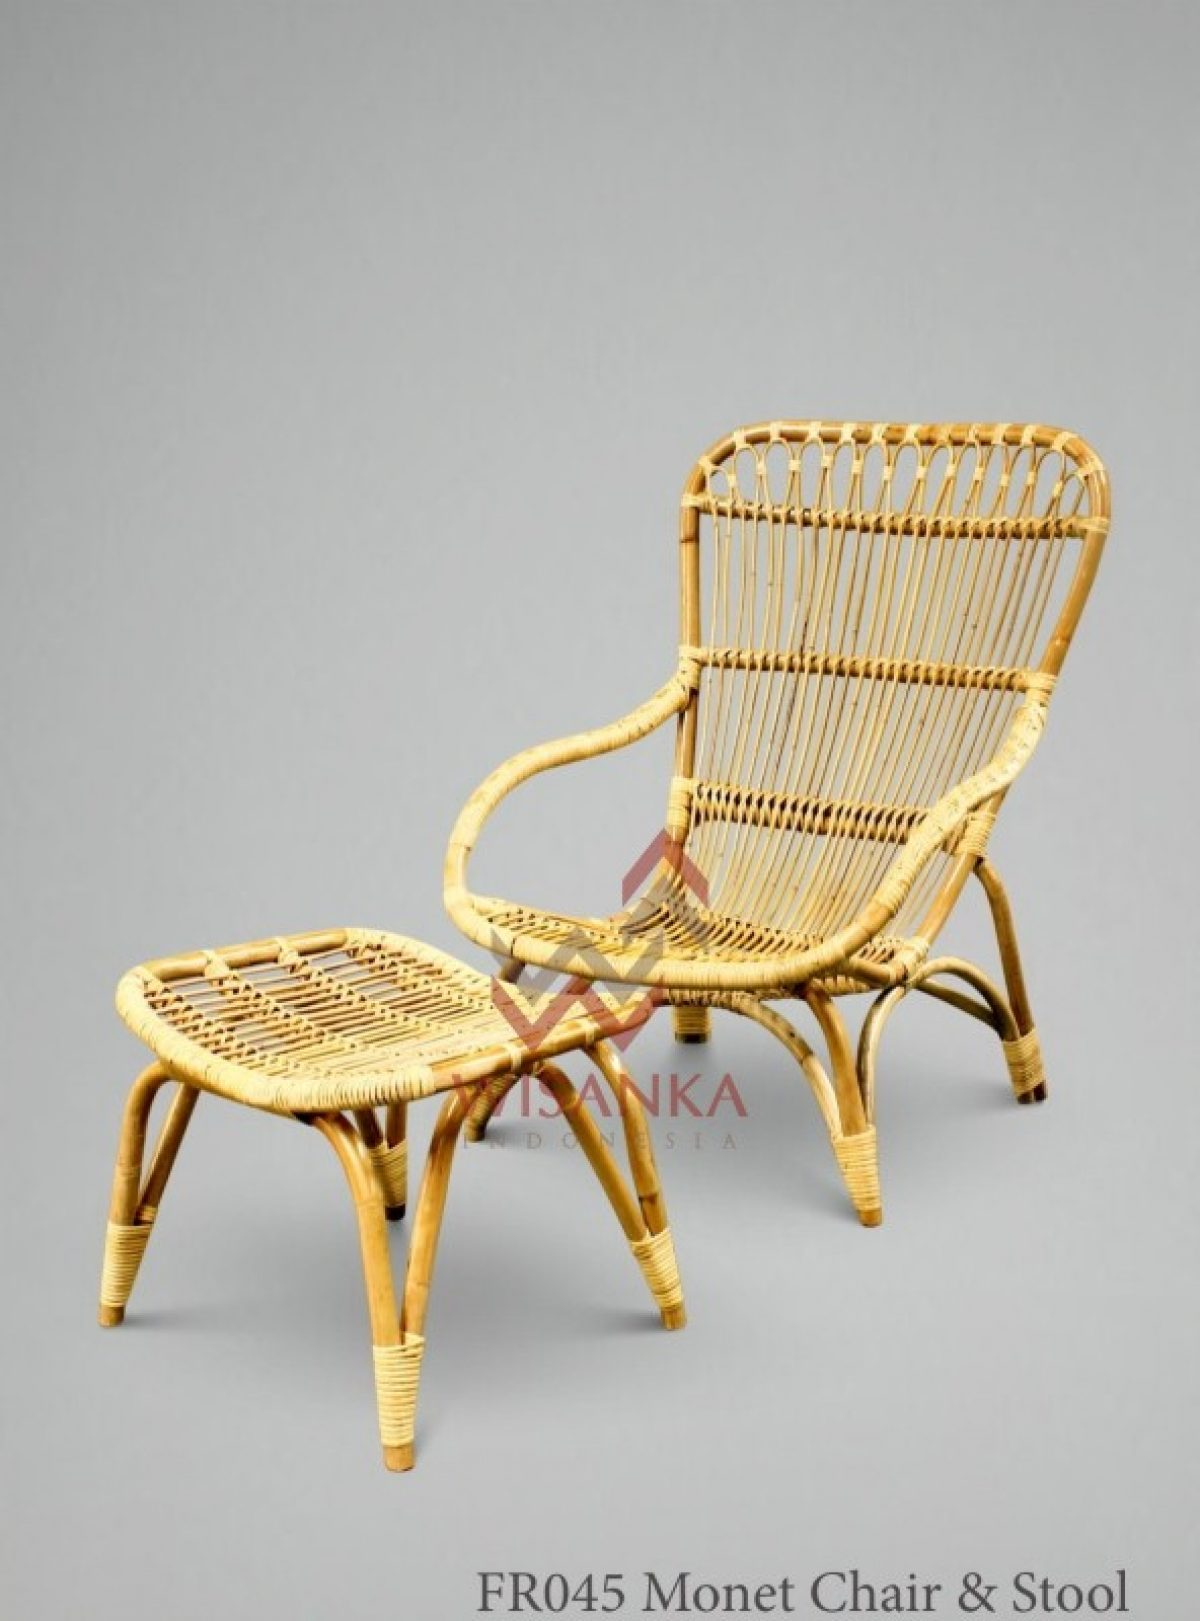 Monet Rattan Lazy Chair Indonesia Rattan Furniture Wicker Furniture Rattan Kids Furniture